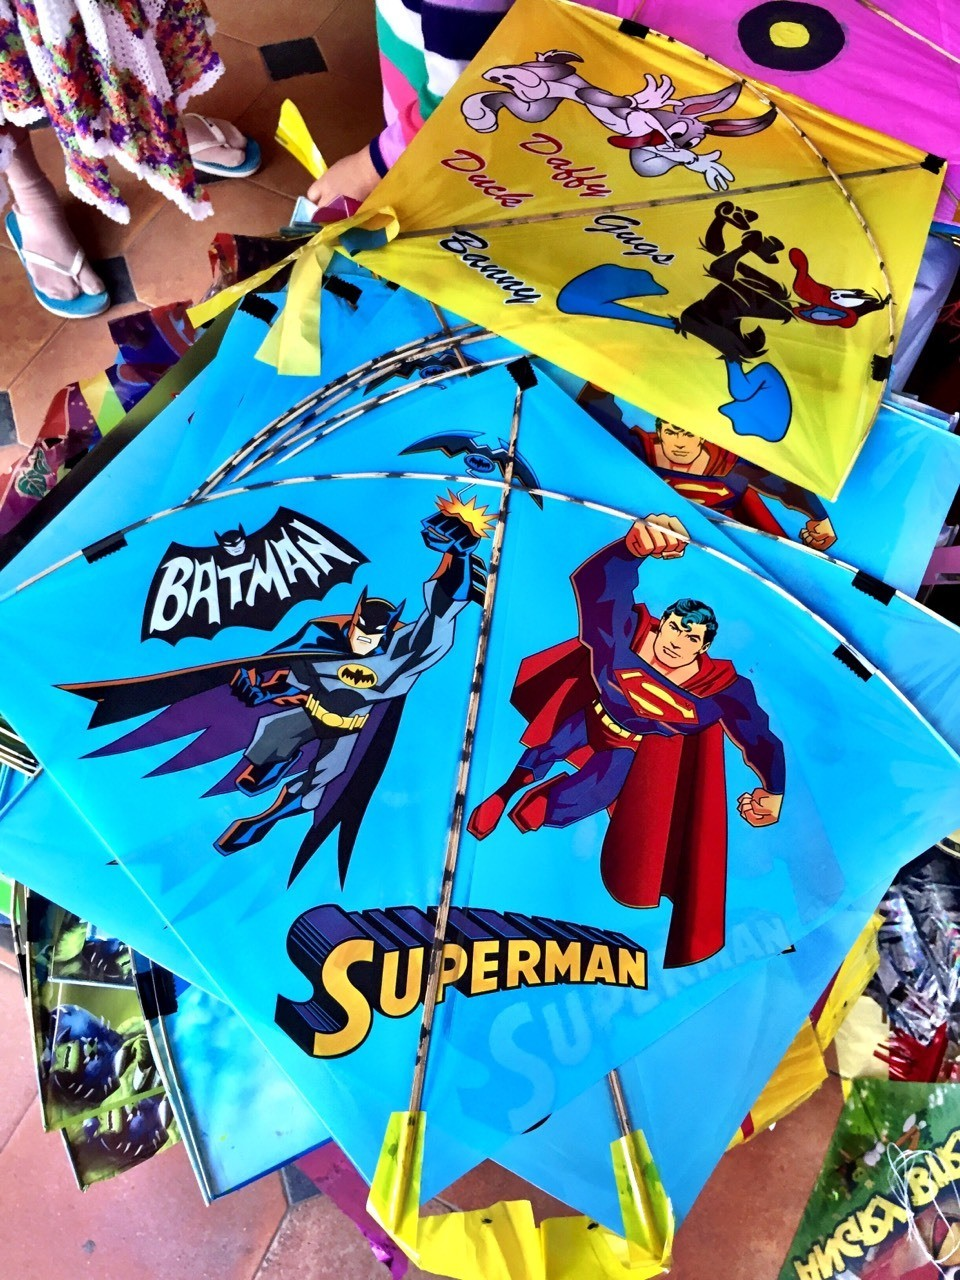 The super heroes take flight on kites #iphoneography #streetphotography